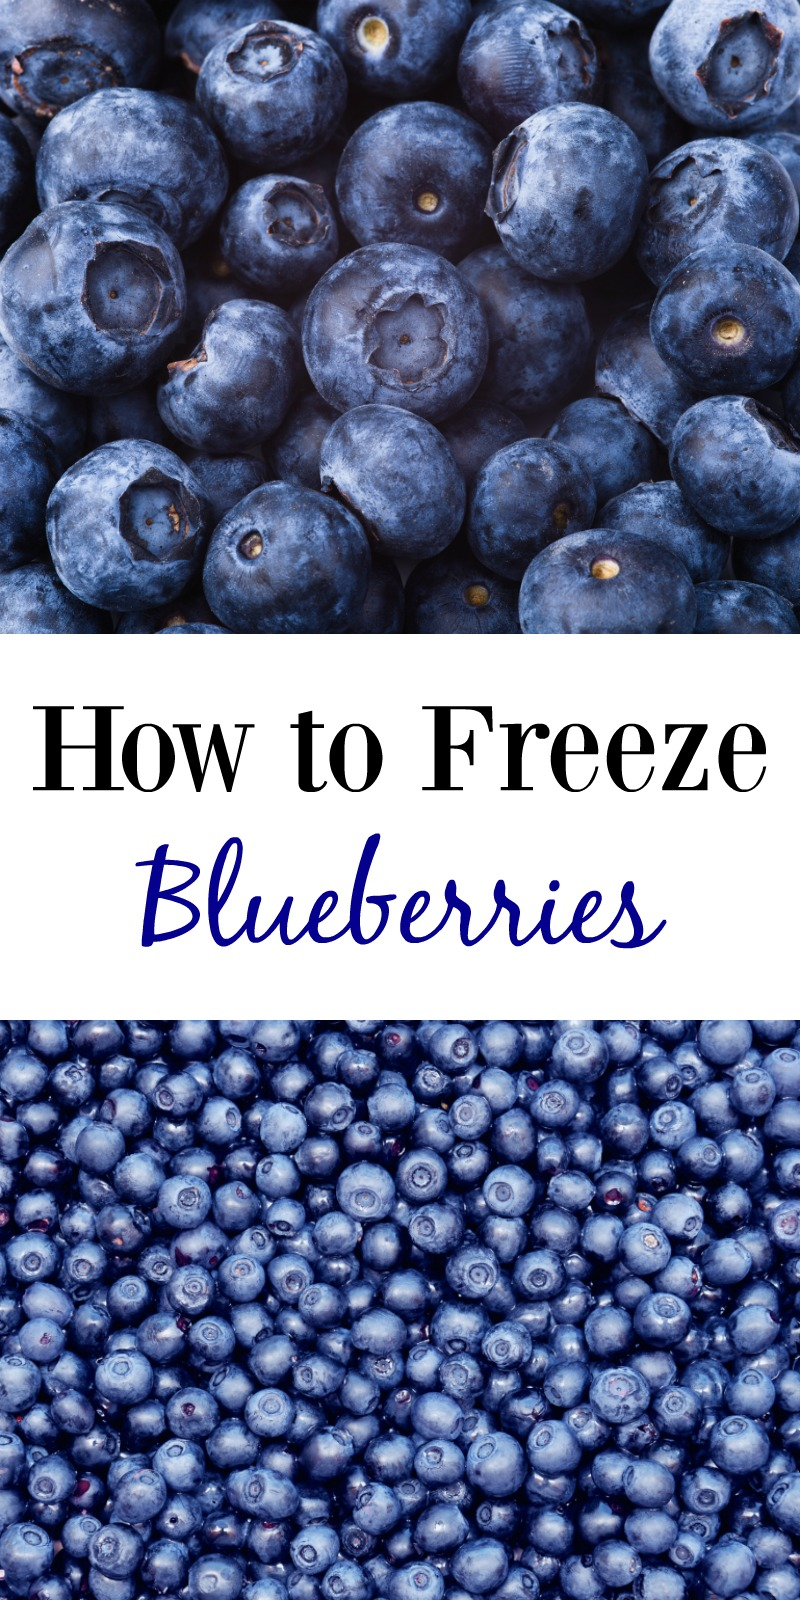 How to Freeze Blueberries--this frugal trick will show you just how easy it is to freeze farm fresh blueberries to use in baked goods, smoothies and more all year long!